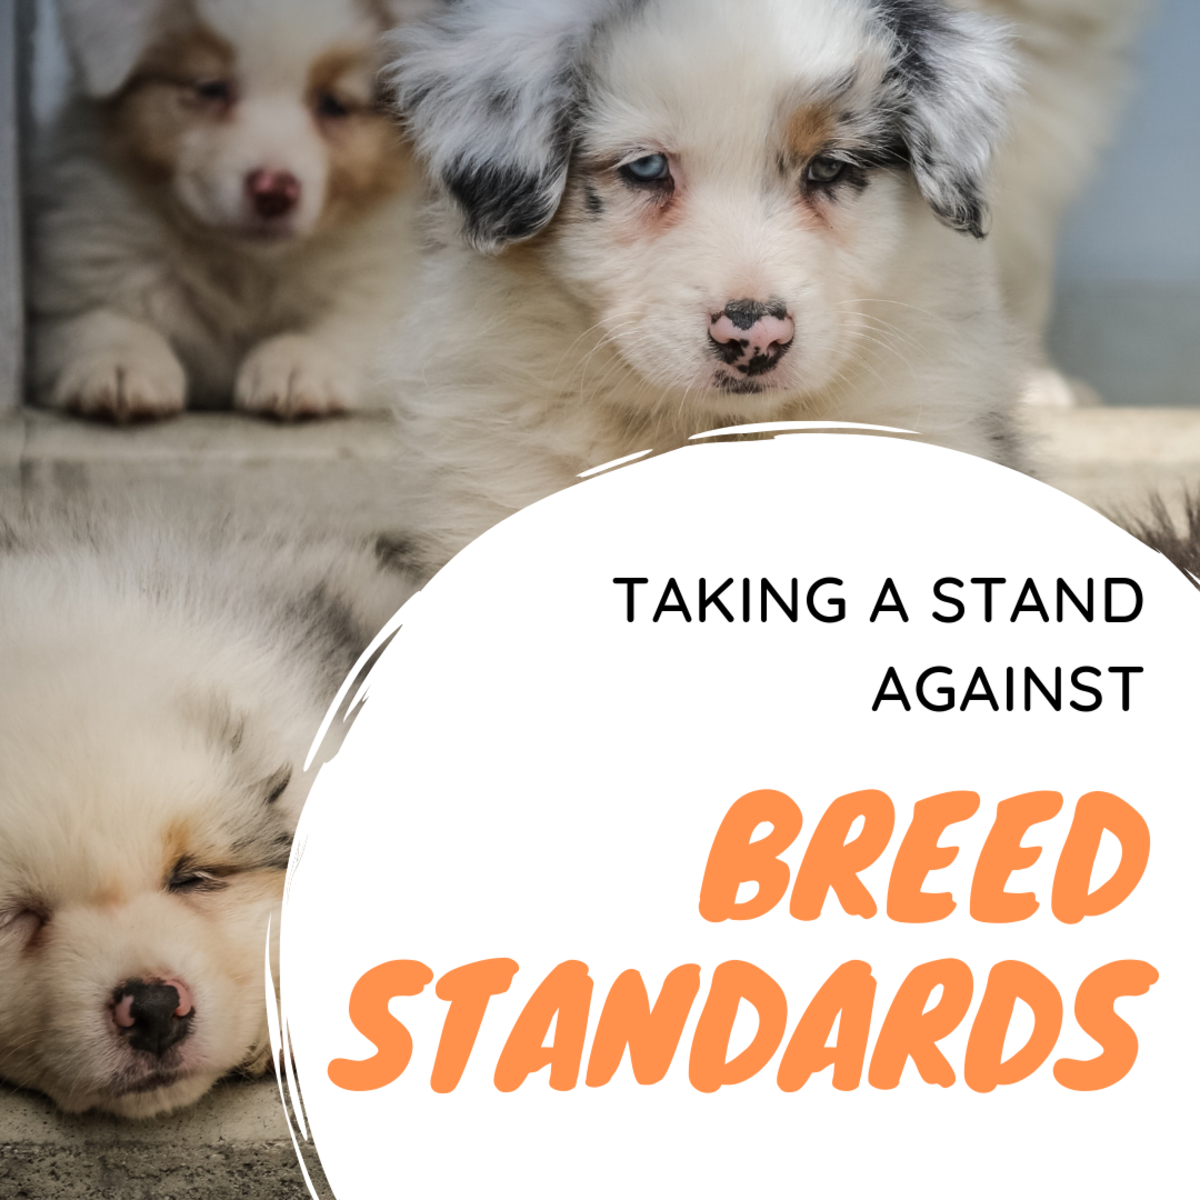 Breed standards are harmful to future generations of dogs.